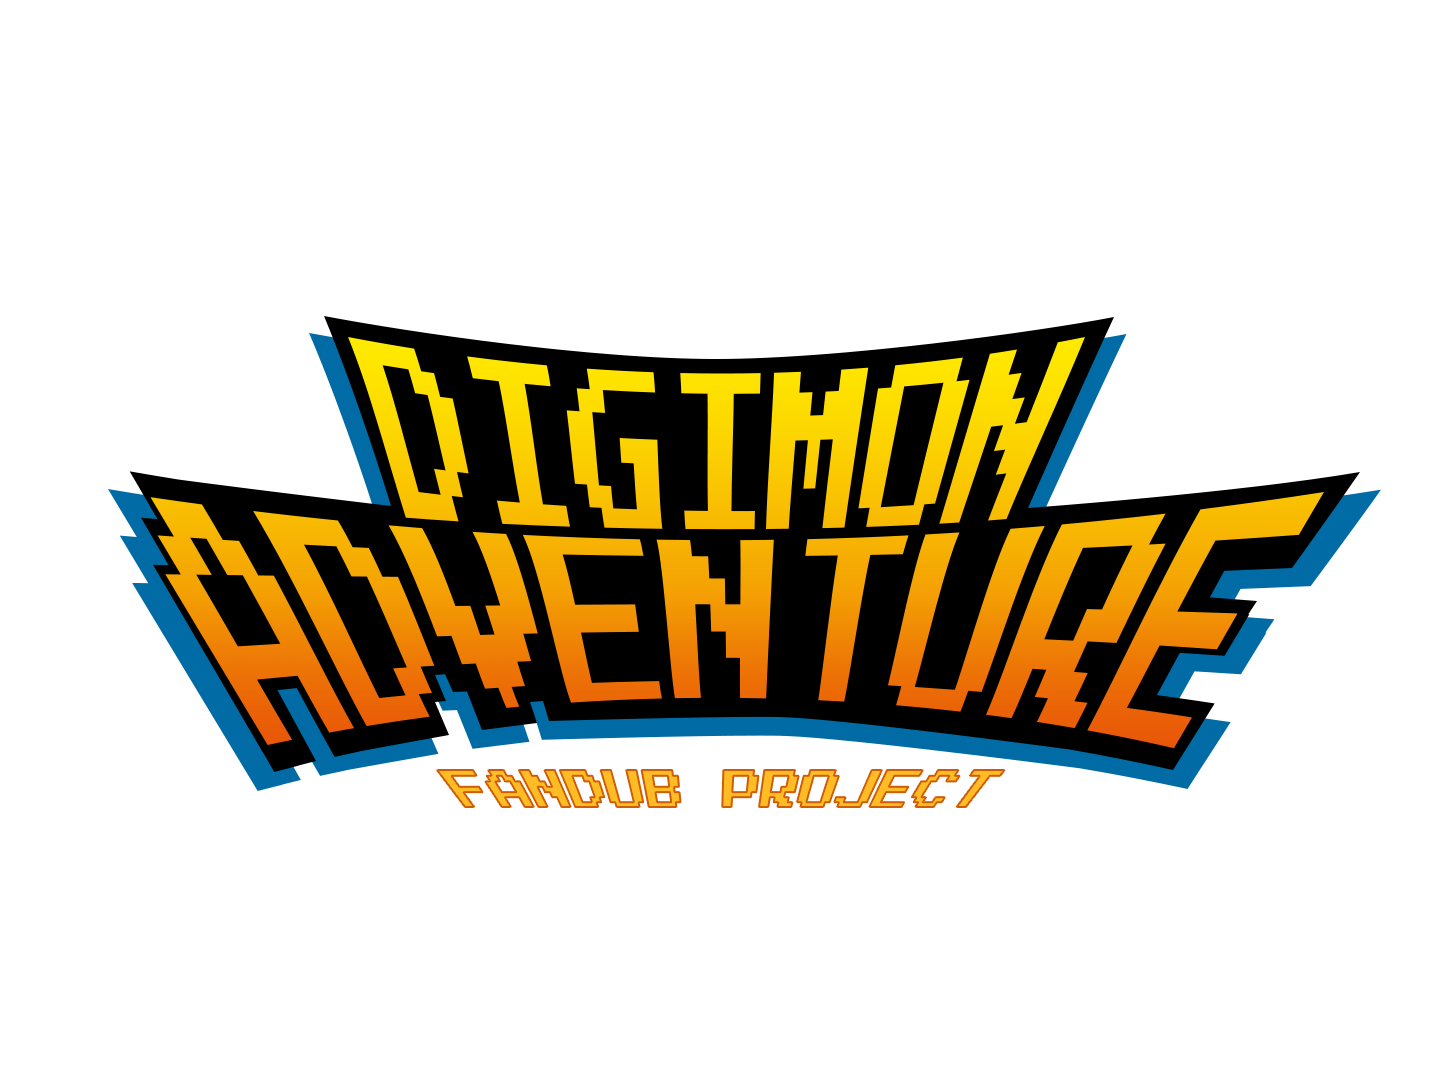 Digimon Adventure Fandub